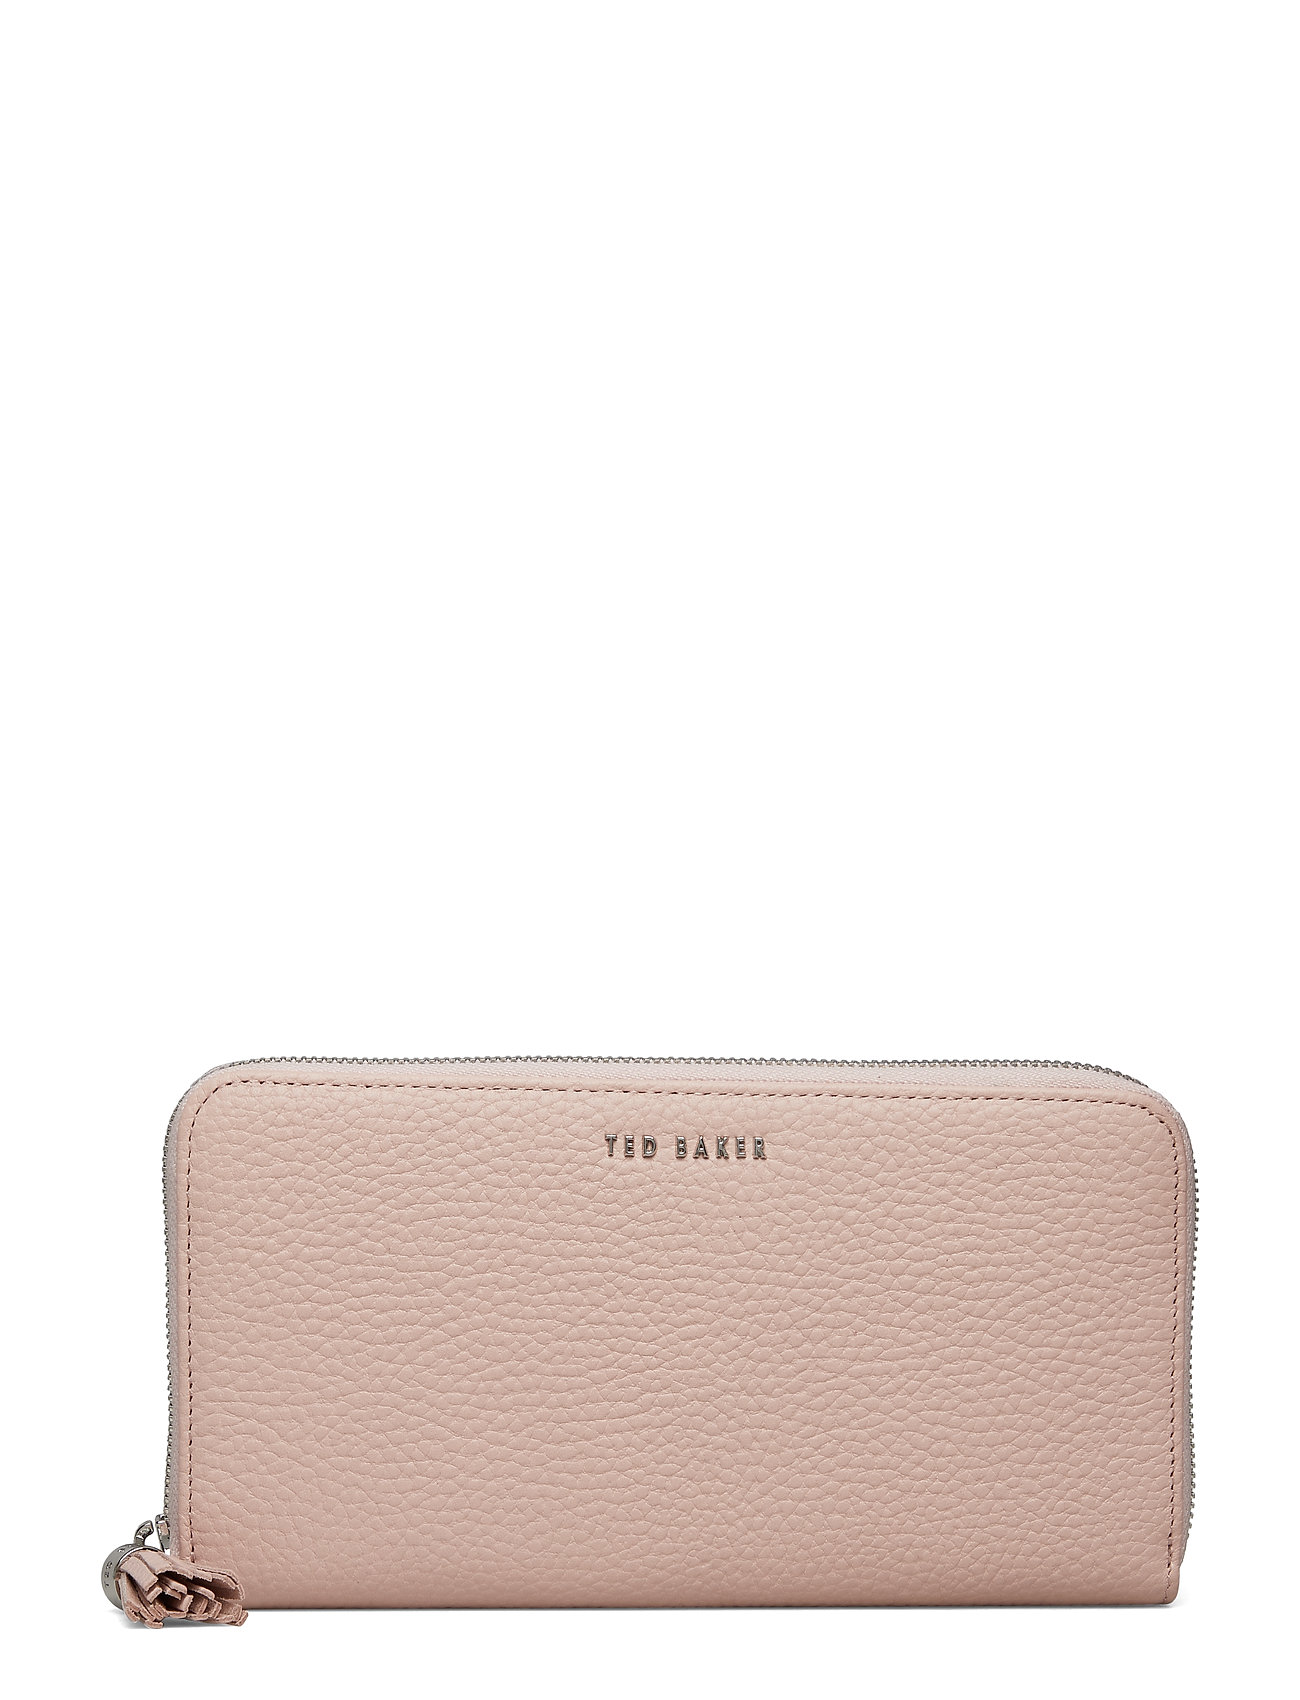 TED BAKER Sheea Bags Card Holders & Wallets Wallets Pink TED BAKER